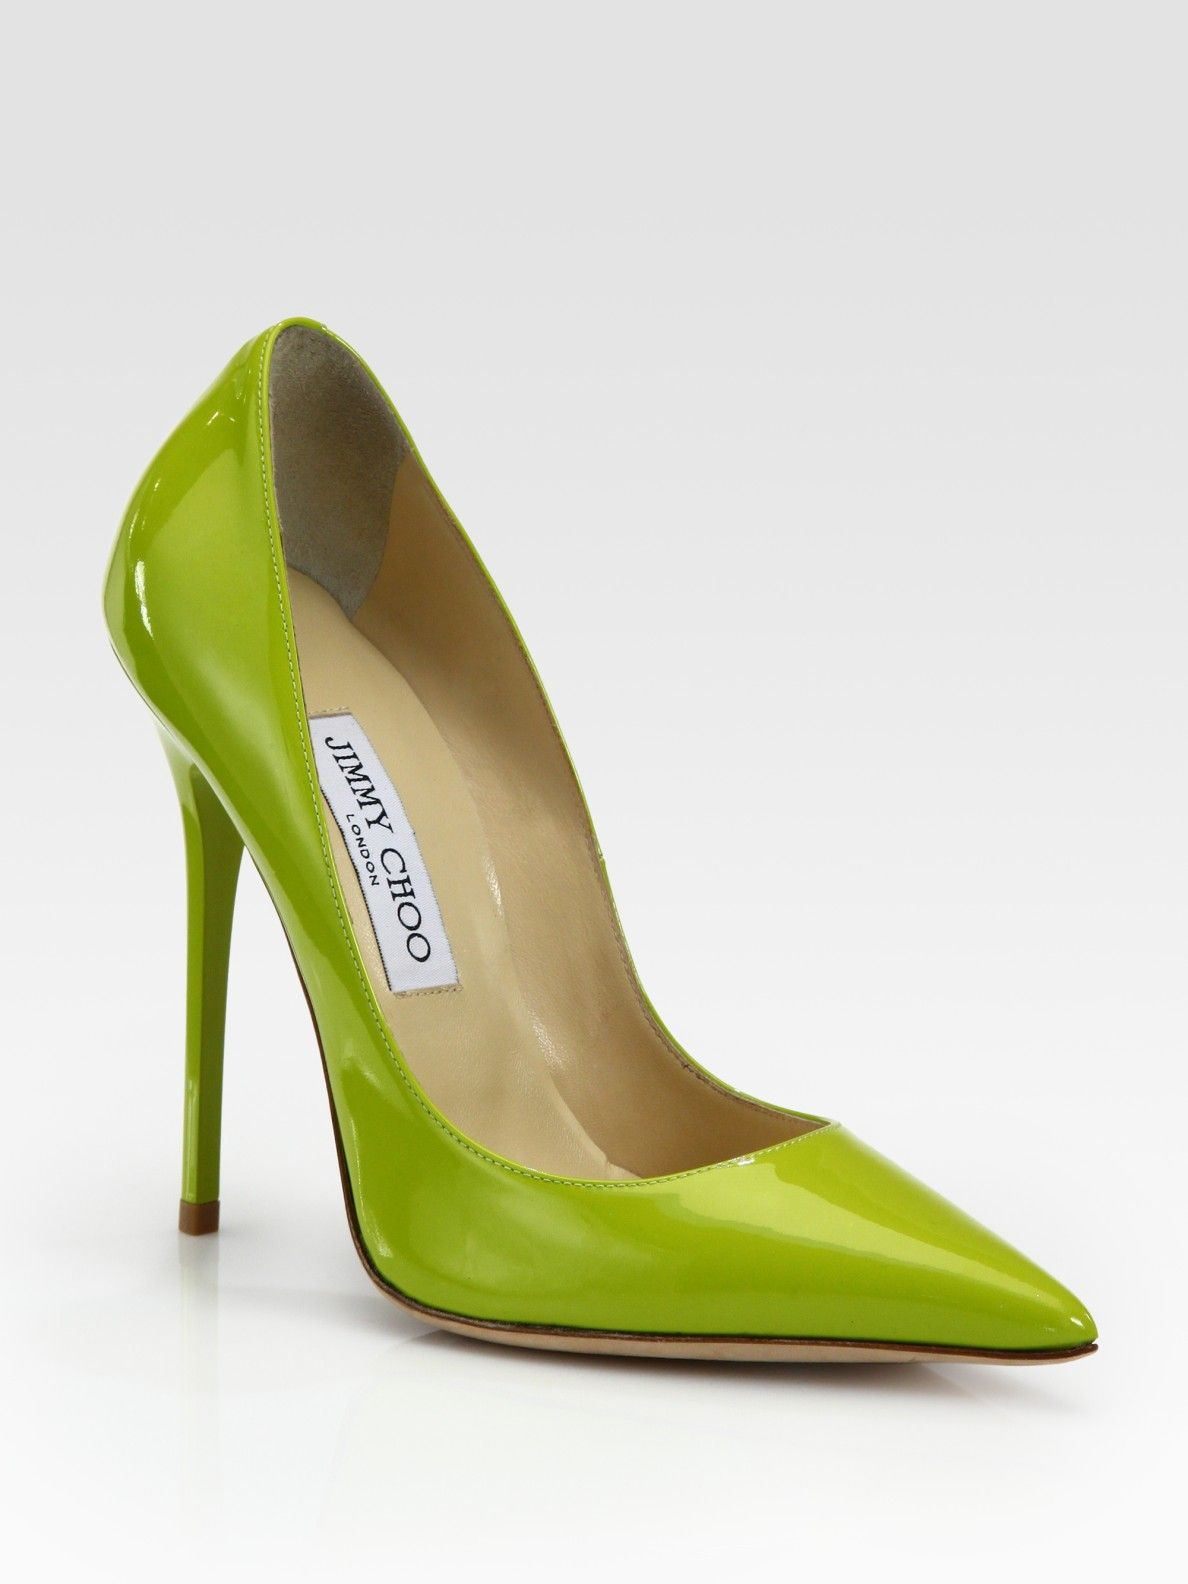 bdbbad84554a Jimmy Choo Anouk Patent Leather Pumps in Green